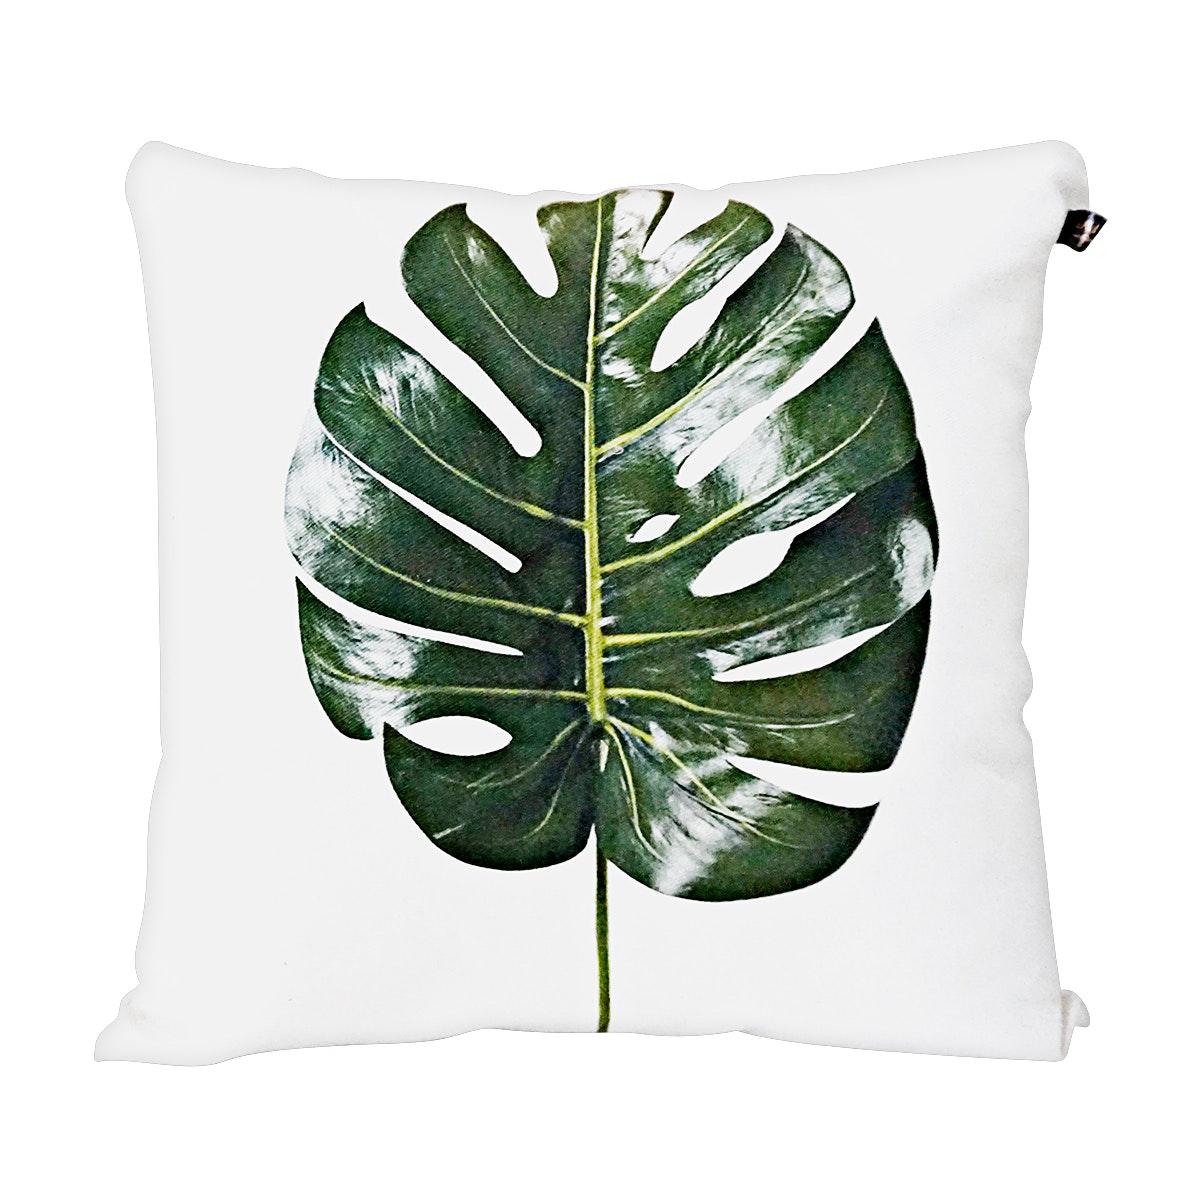 Megallery Cover Cushion C25 40x40cm